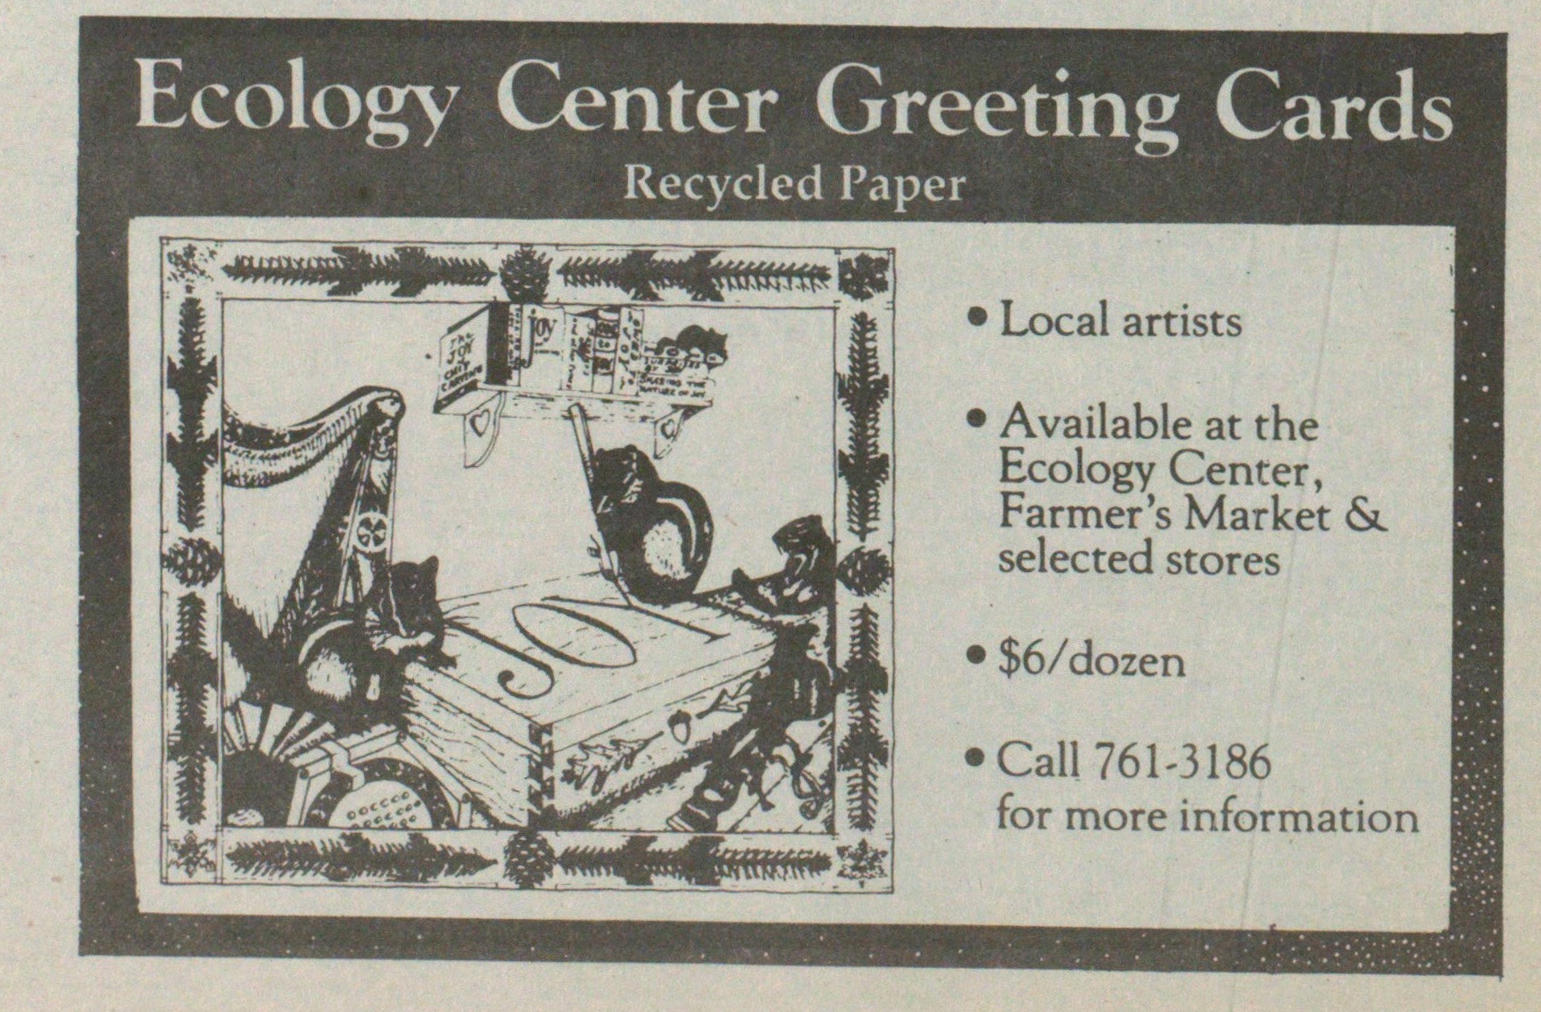 Ecology Center Greeting Cards image